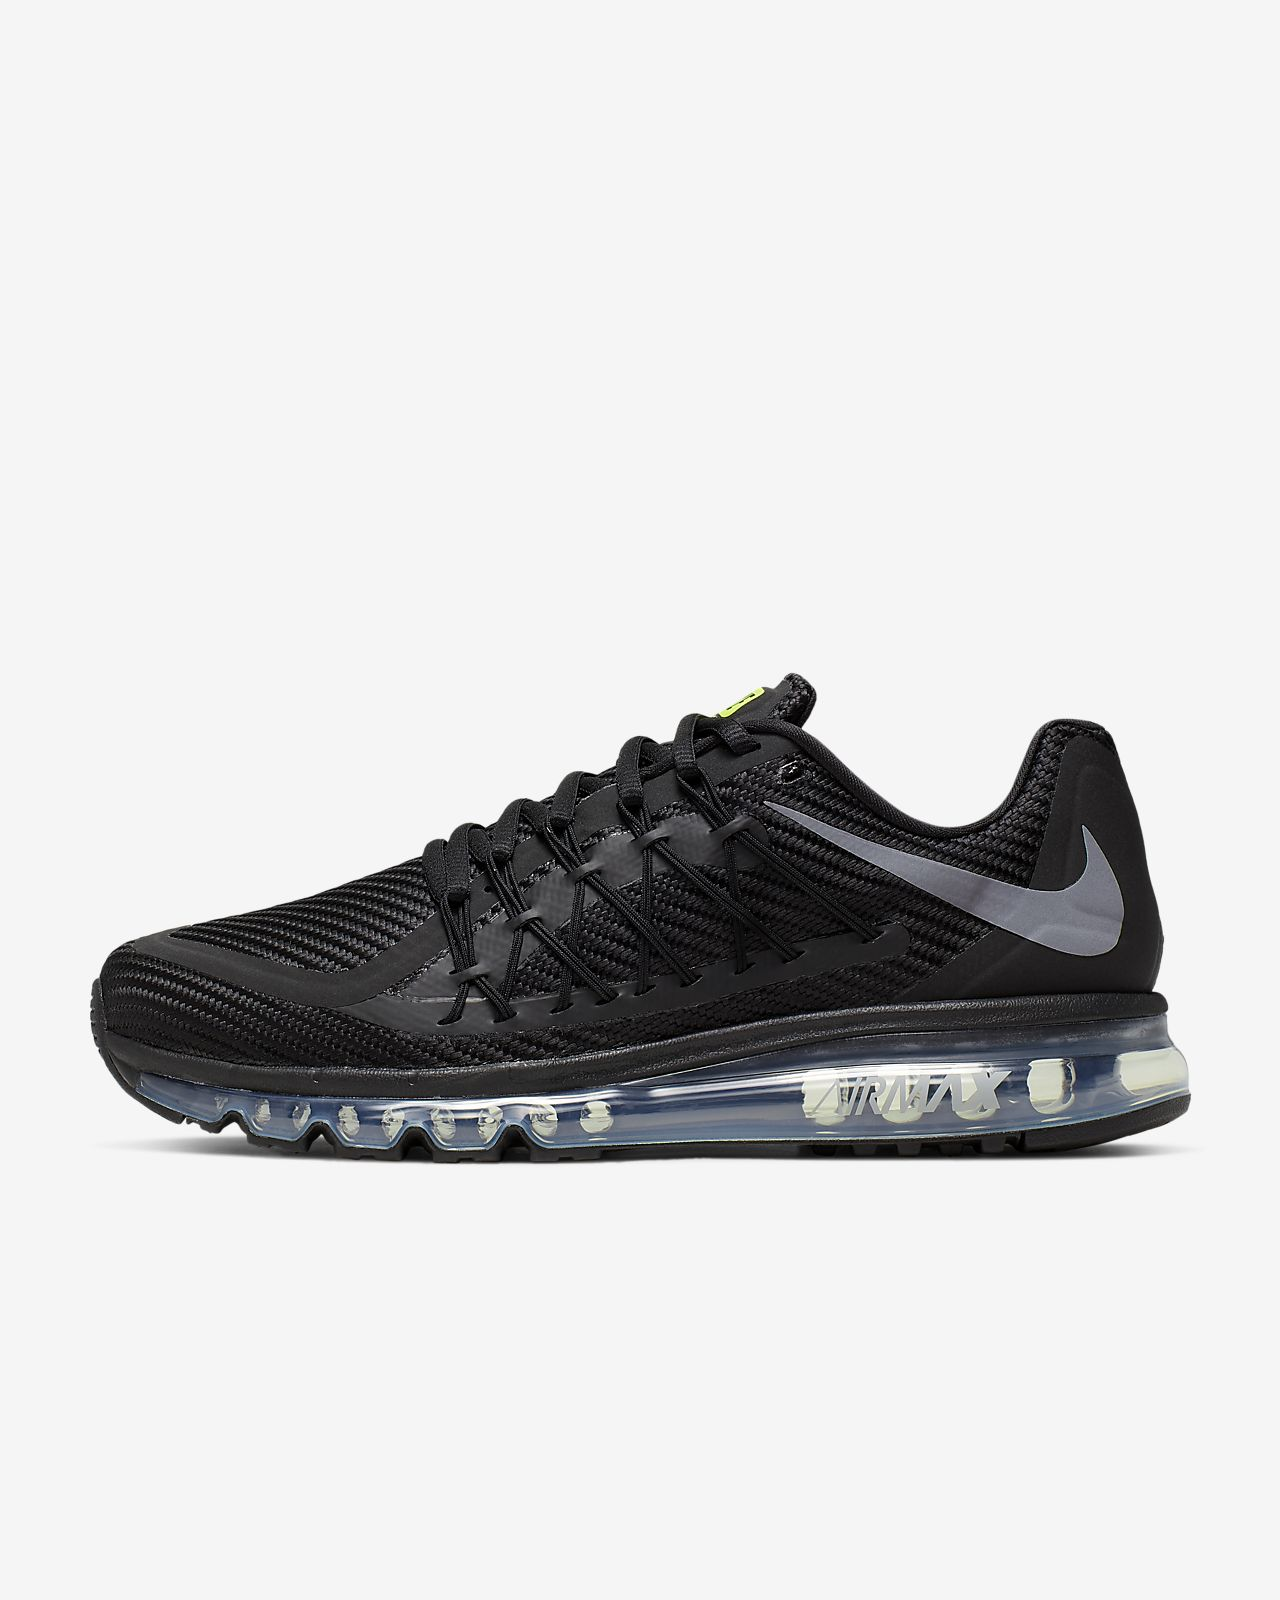 Women's Nike Air Max 97 Wolf Grey Suede Trainers For Sale